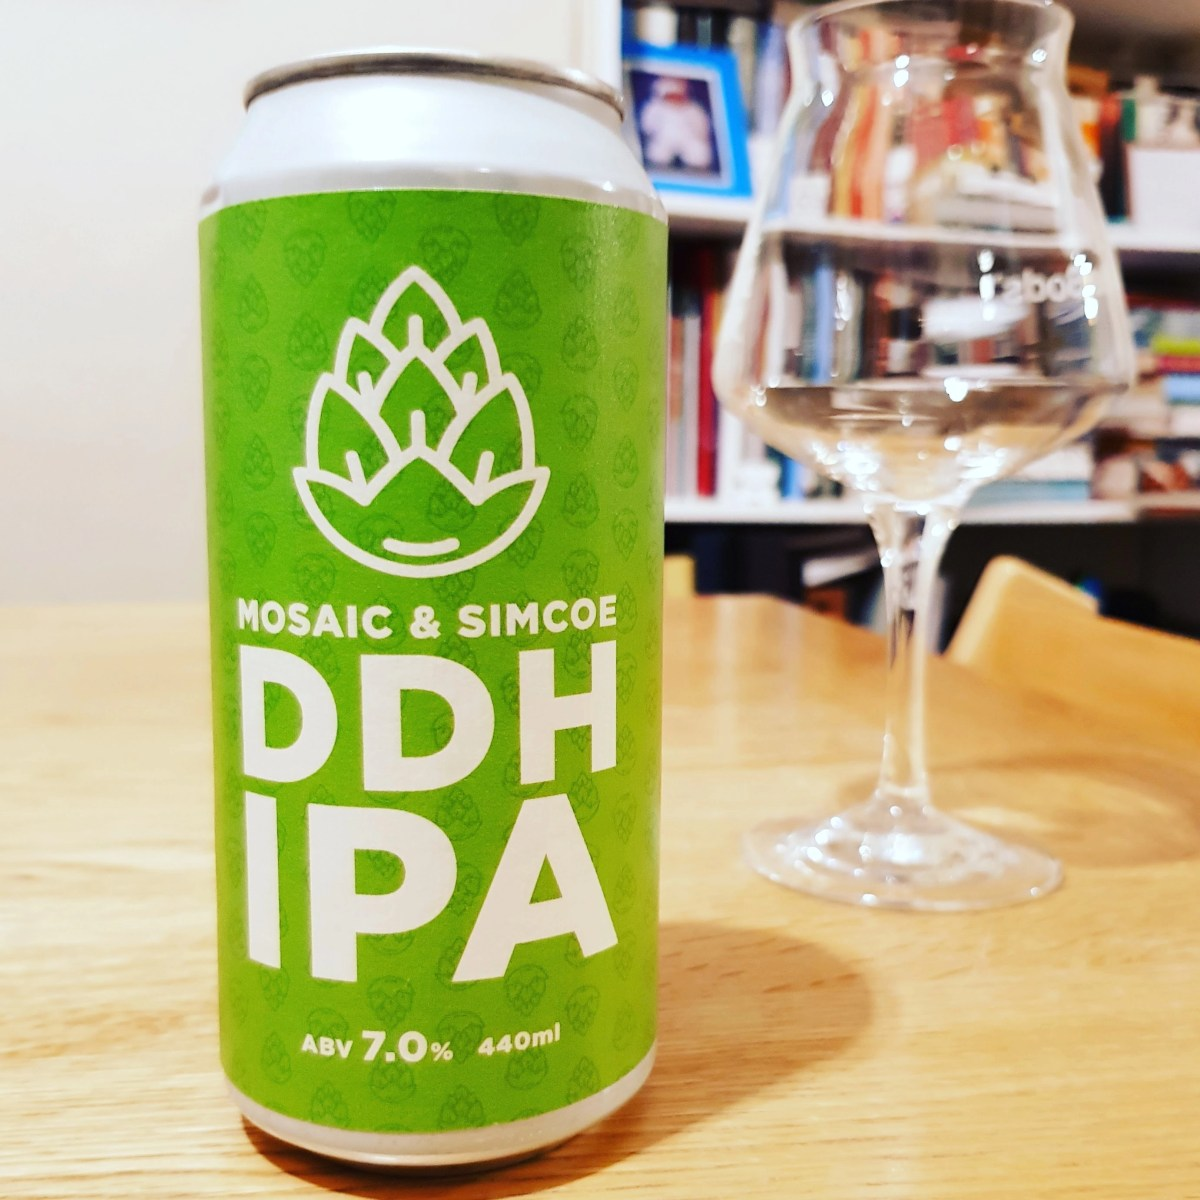 Hop Stuff, Mosaic and Simcoe DDH IPA